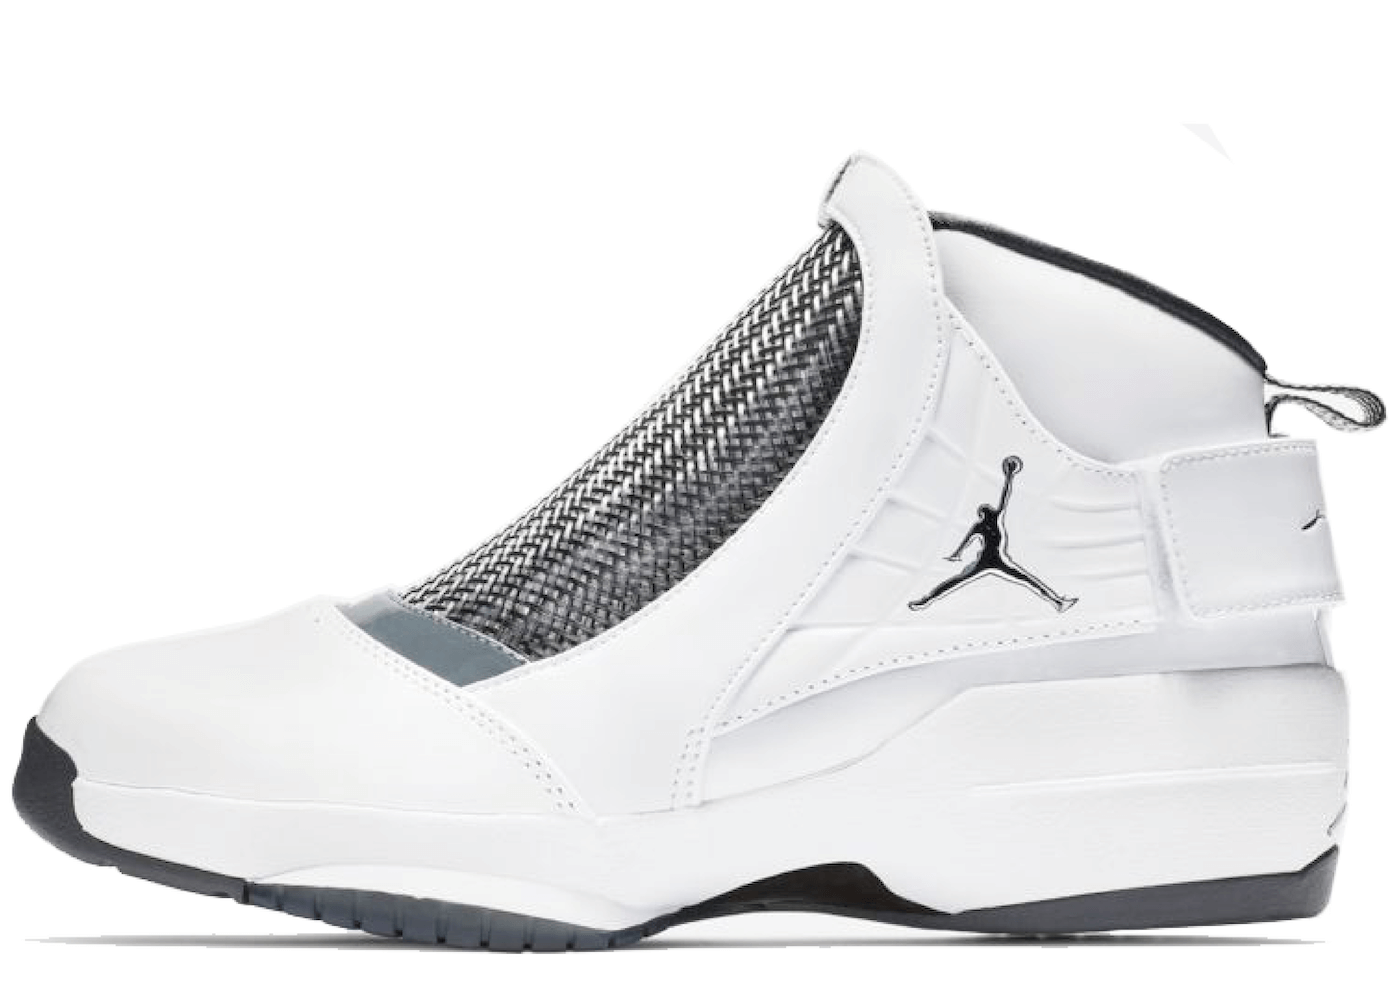 Nike Air Jordan 19 OG Chrome (2019)の写真